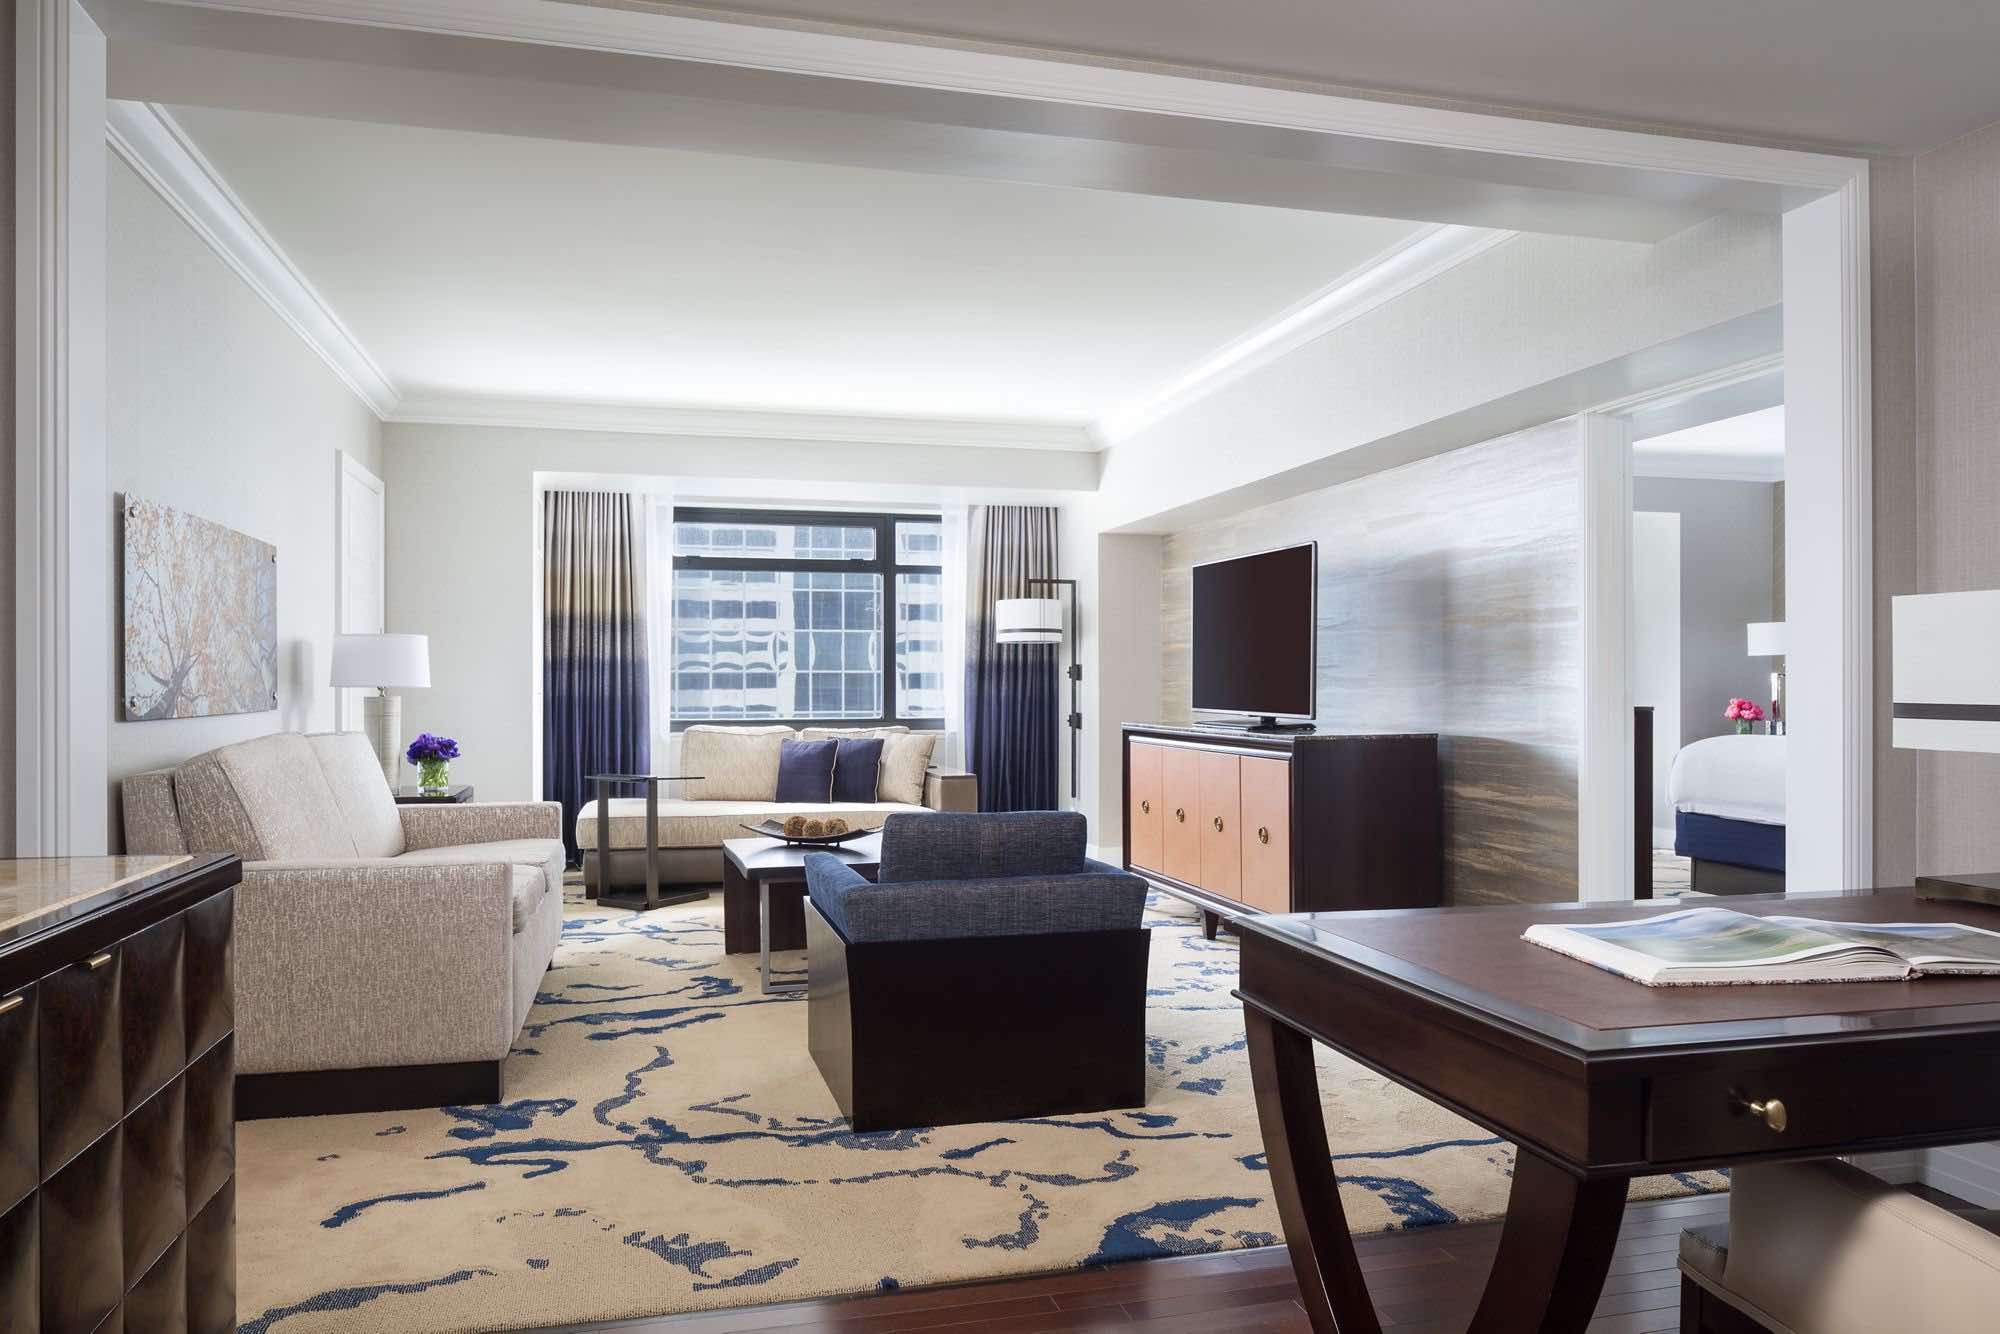 The Ritz-Carlton delluxe suite with living area of top luxury hotels in Denver